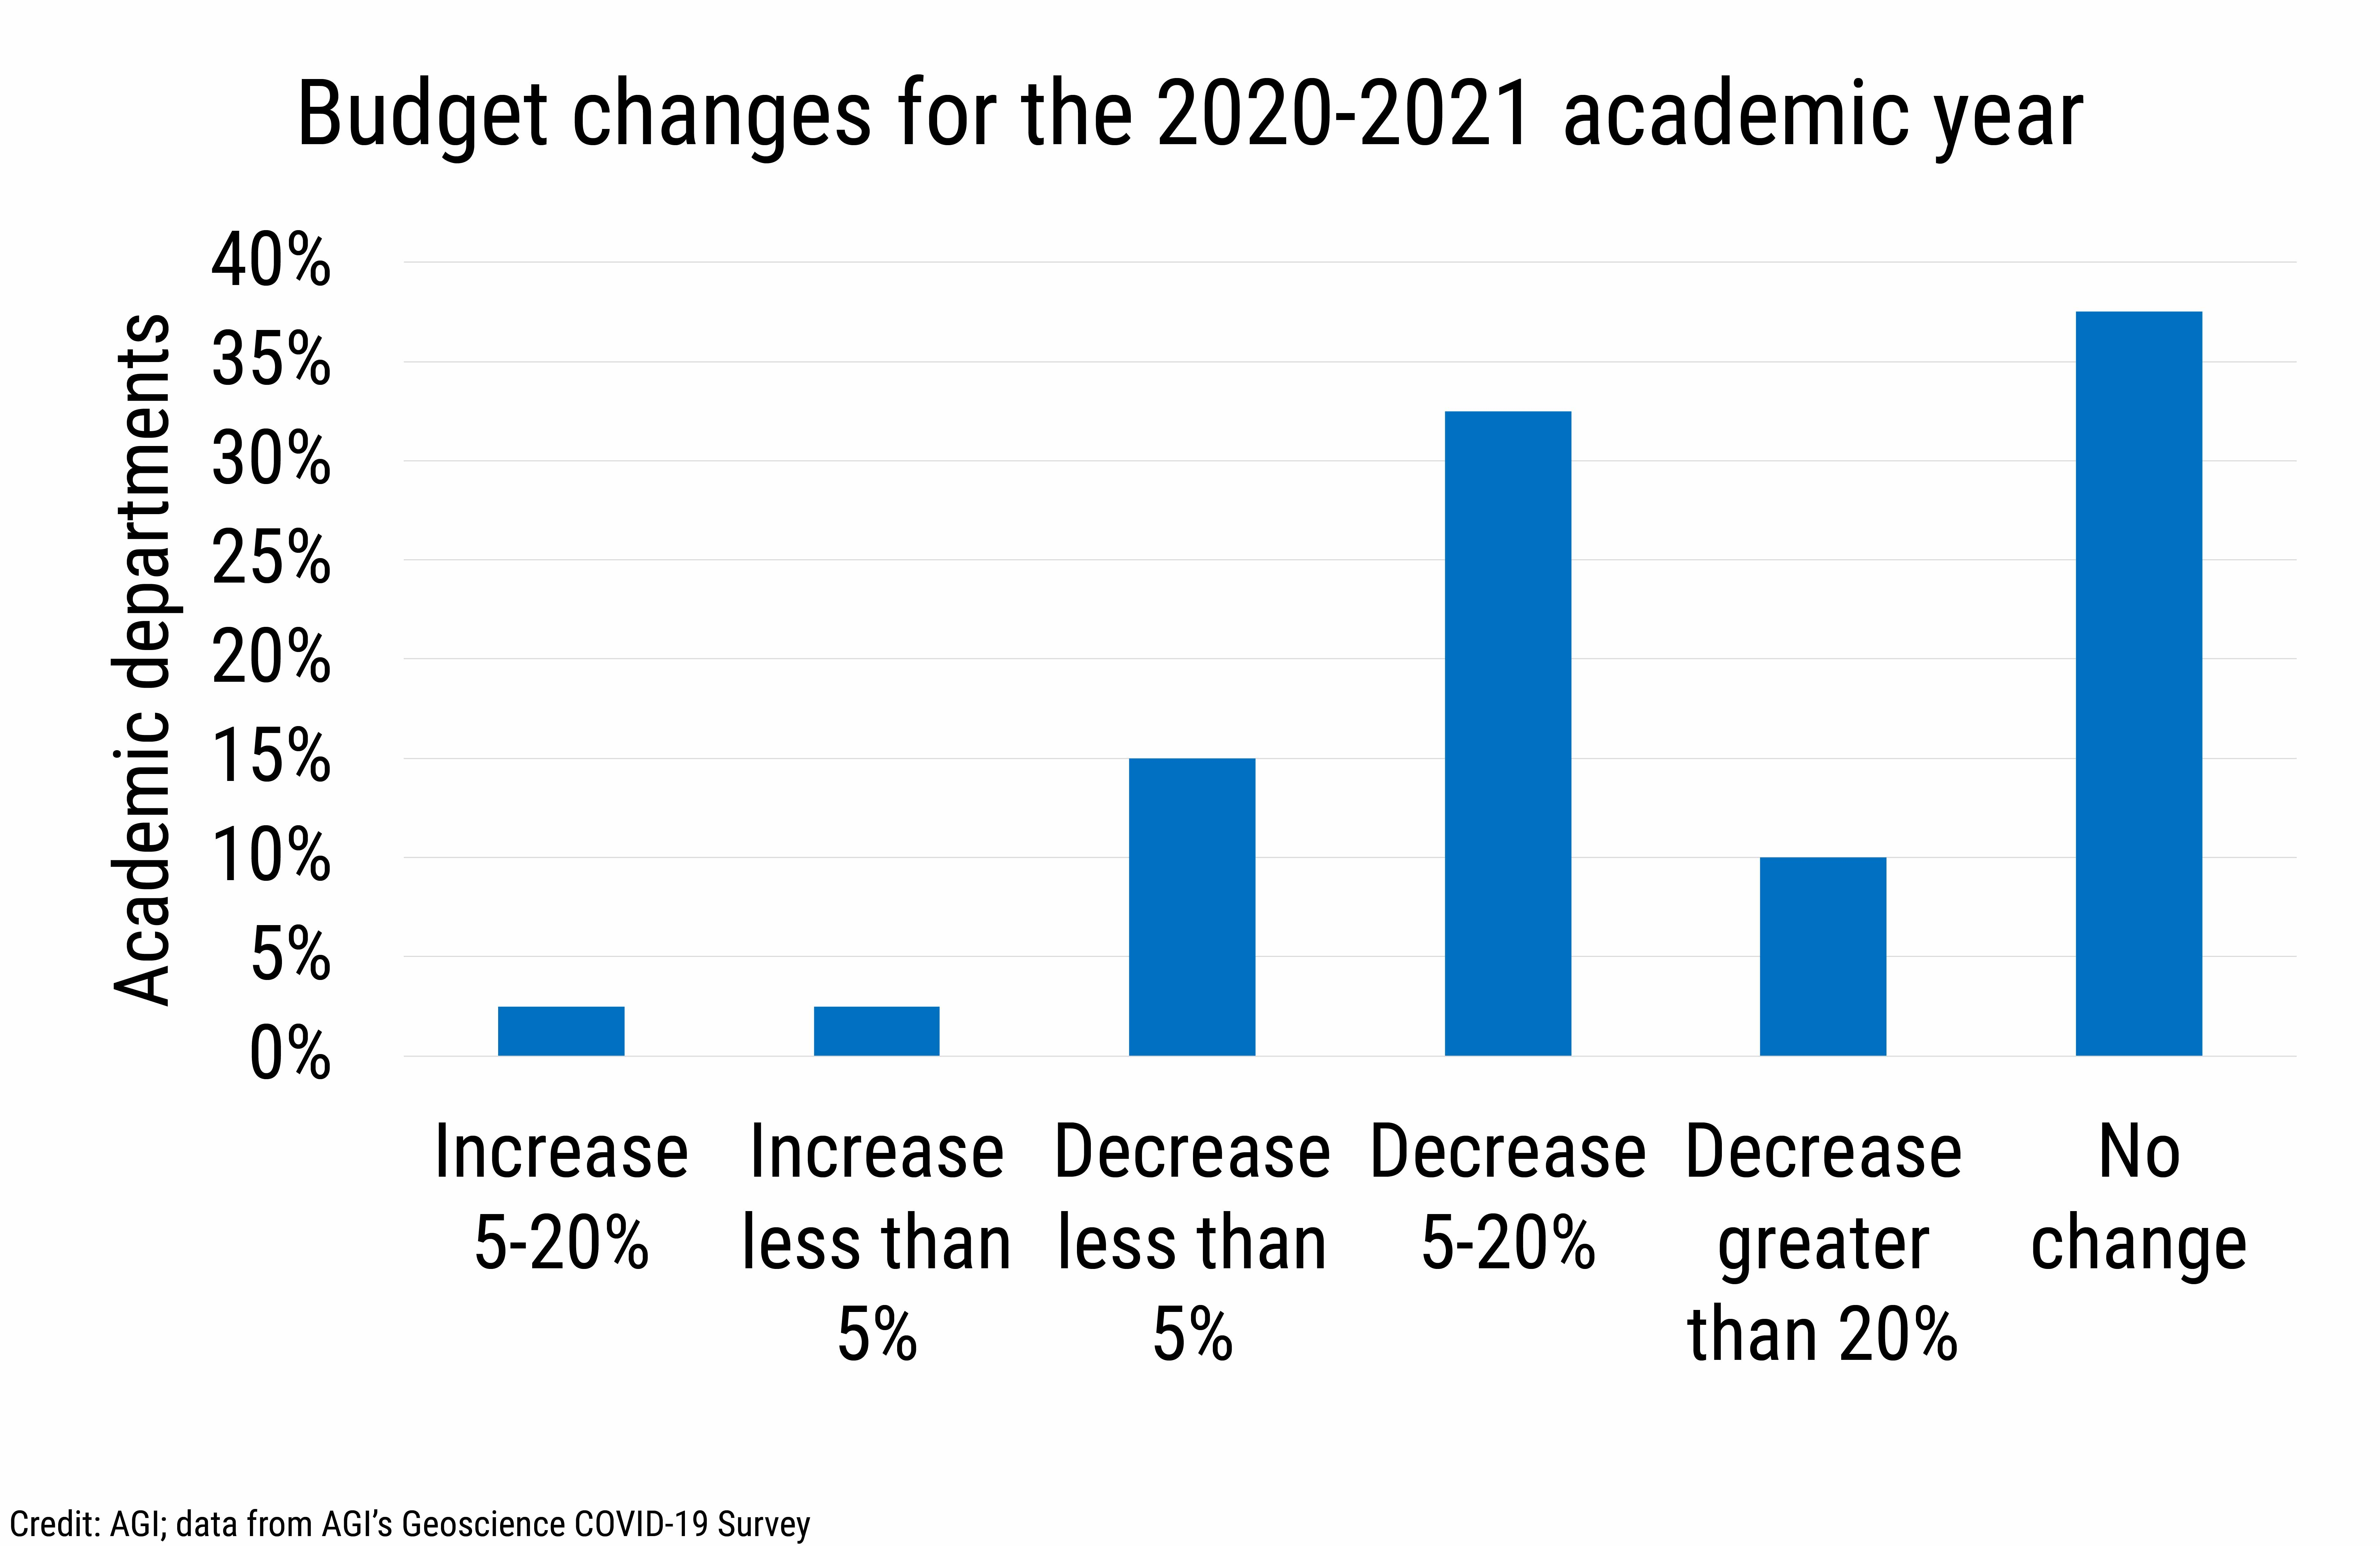 DB_2021-014 chart 01: Budget changes for the 2020-2021 academic year (Credit: AGI; data from AGI's Geoscience COVID-19 Survey)